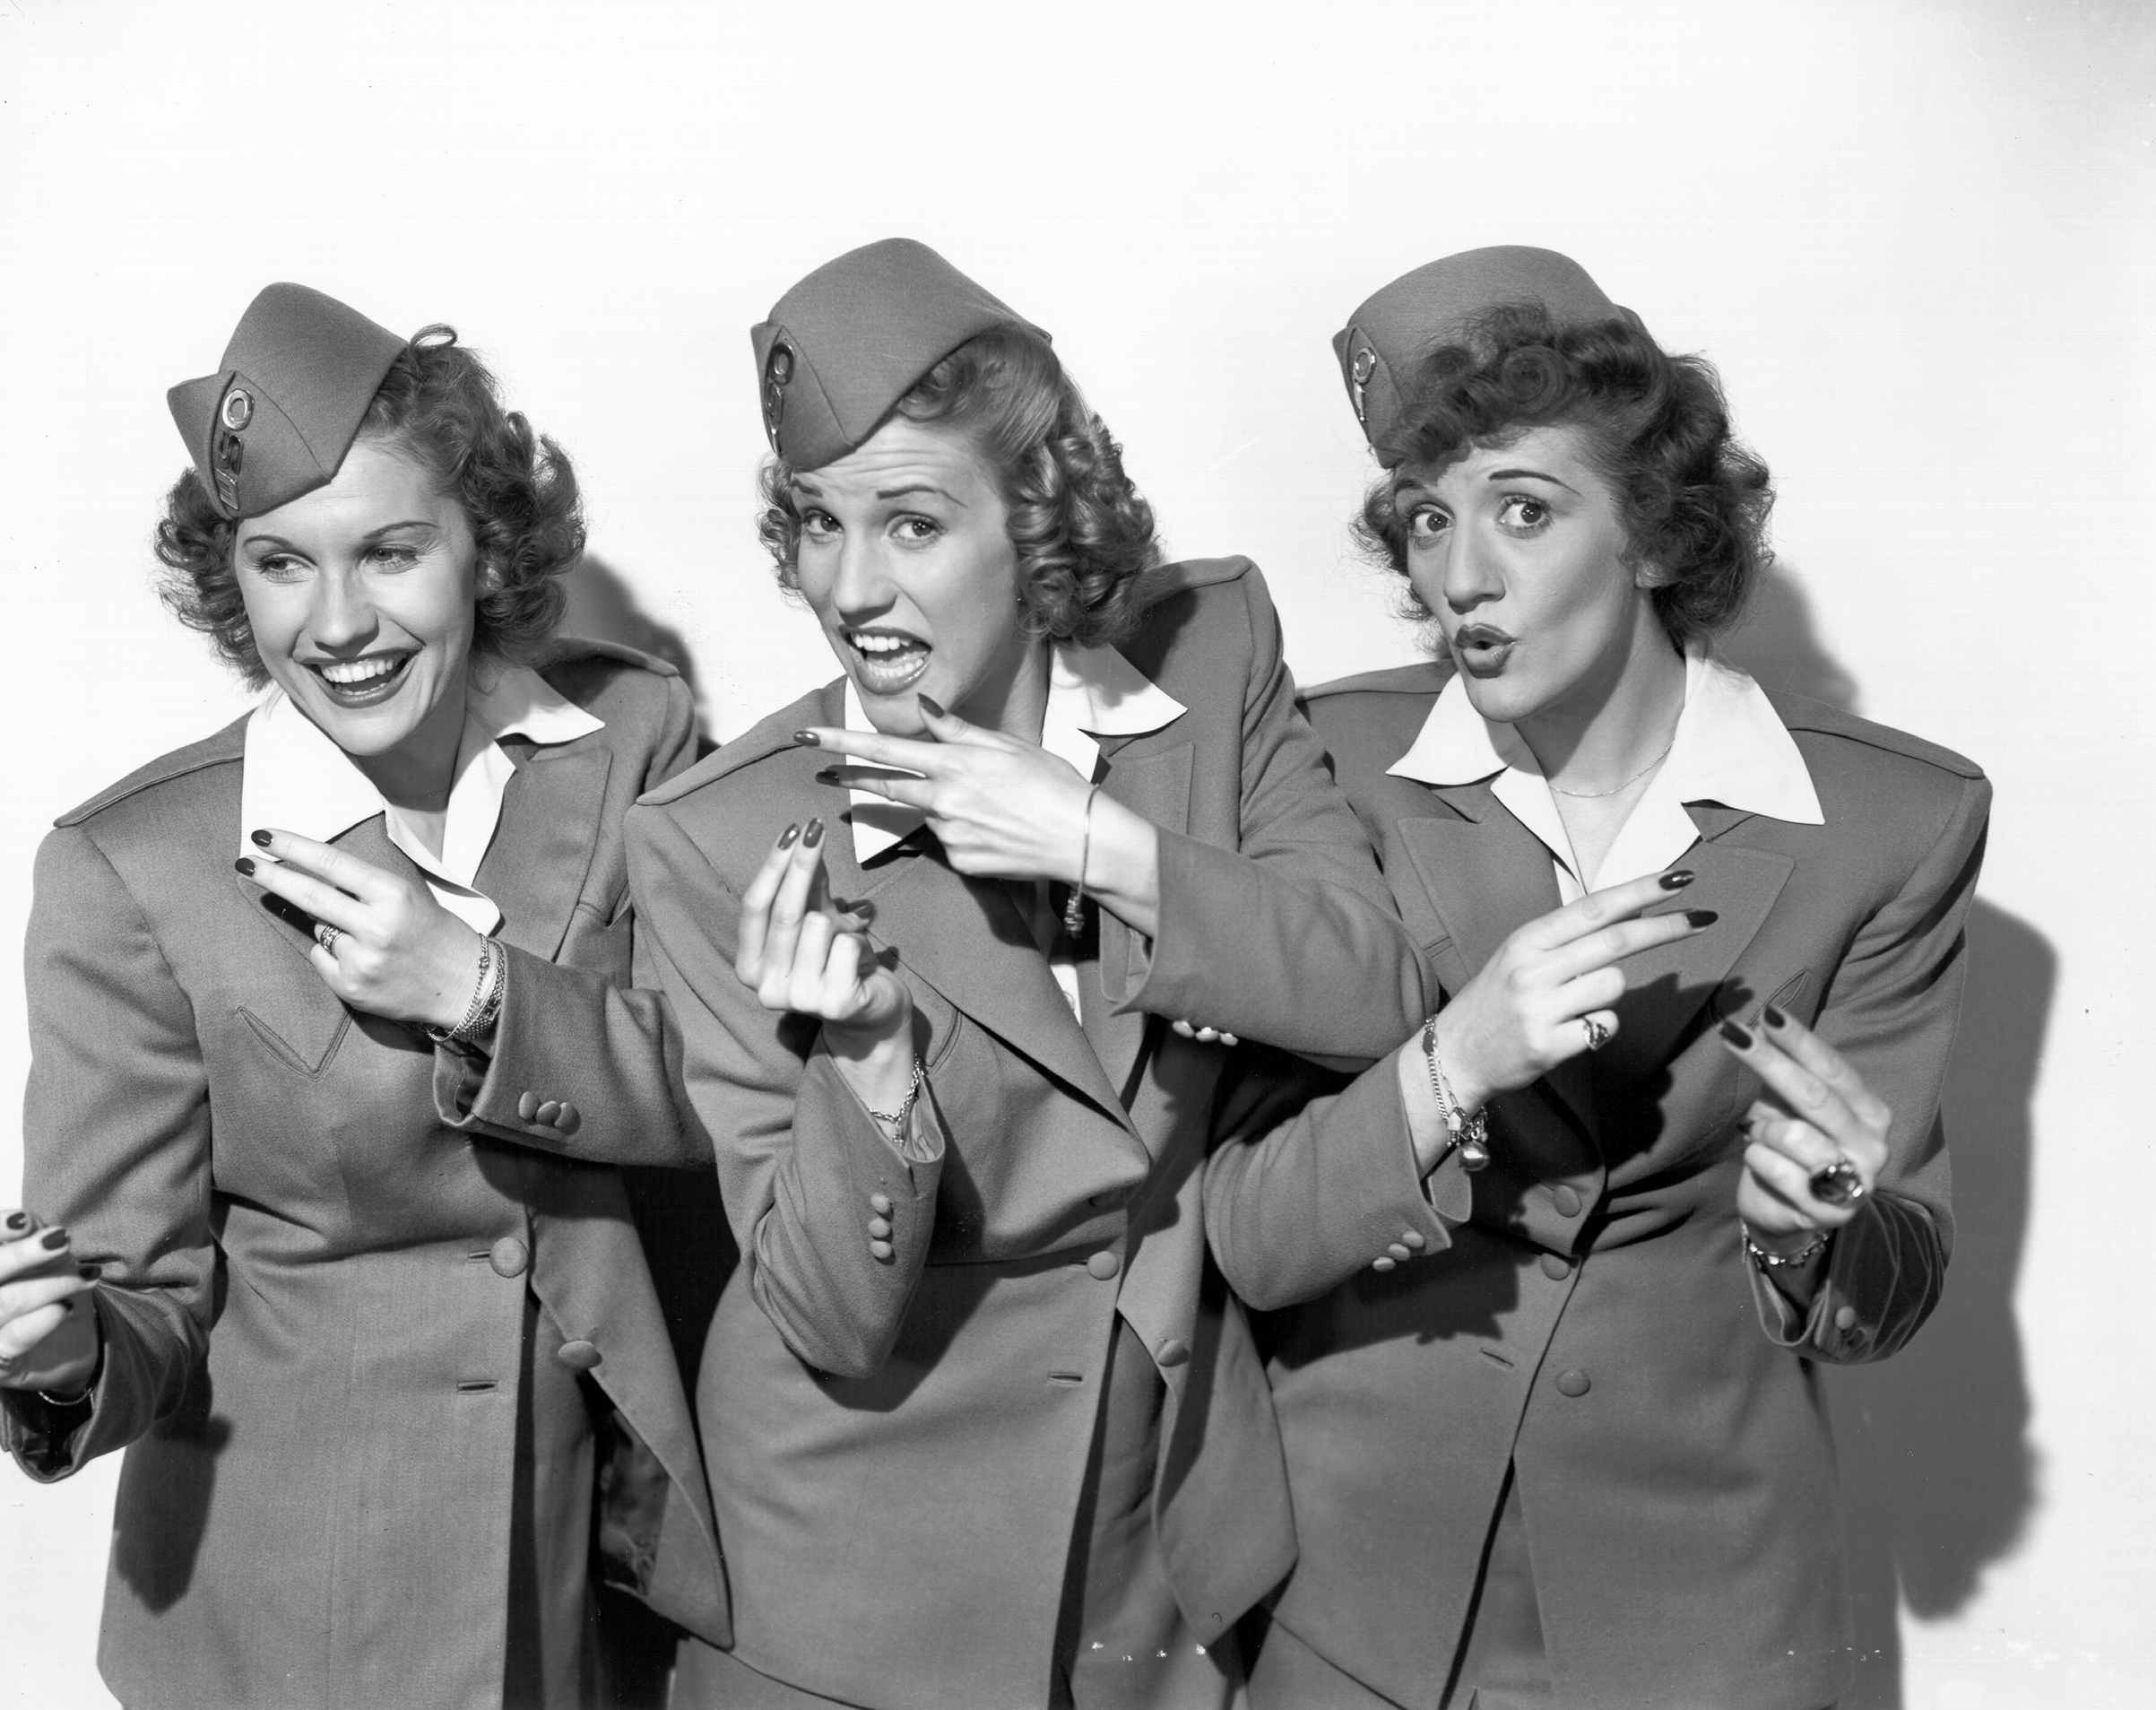 Singing group The Andrews Sisters (l-R Maxine Andrews, Patty Andrews, and LaVerne Andrews) pose for a portrait circa 1944 in New York City, New York.